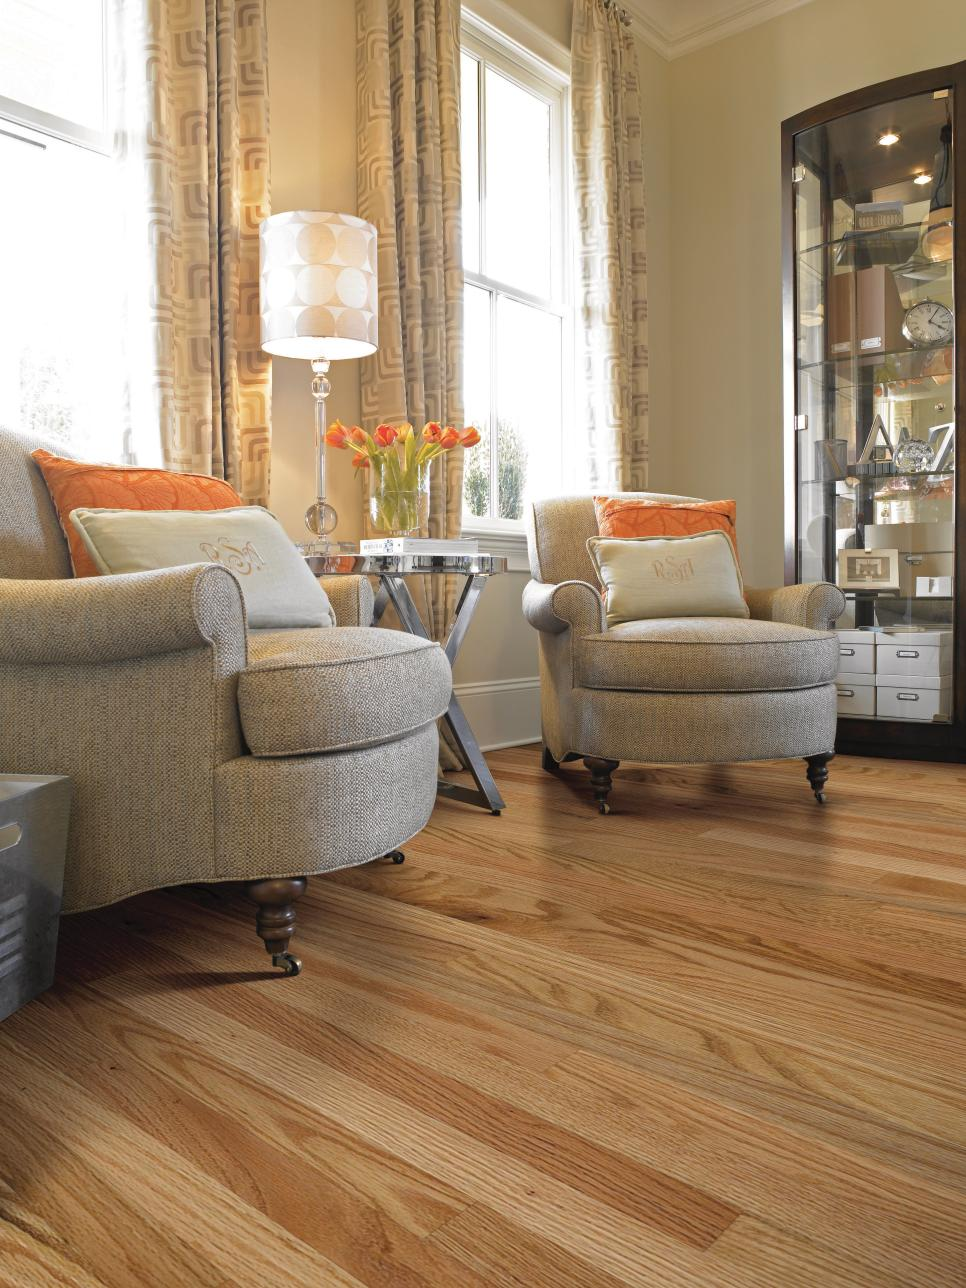 10 stunning hardwood flooring options hgtv for Living room with wood floors